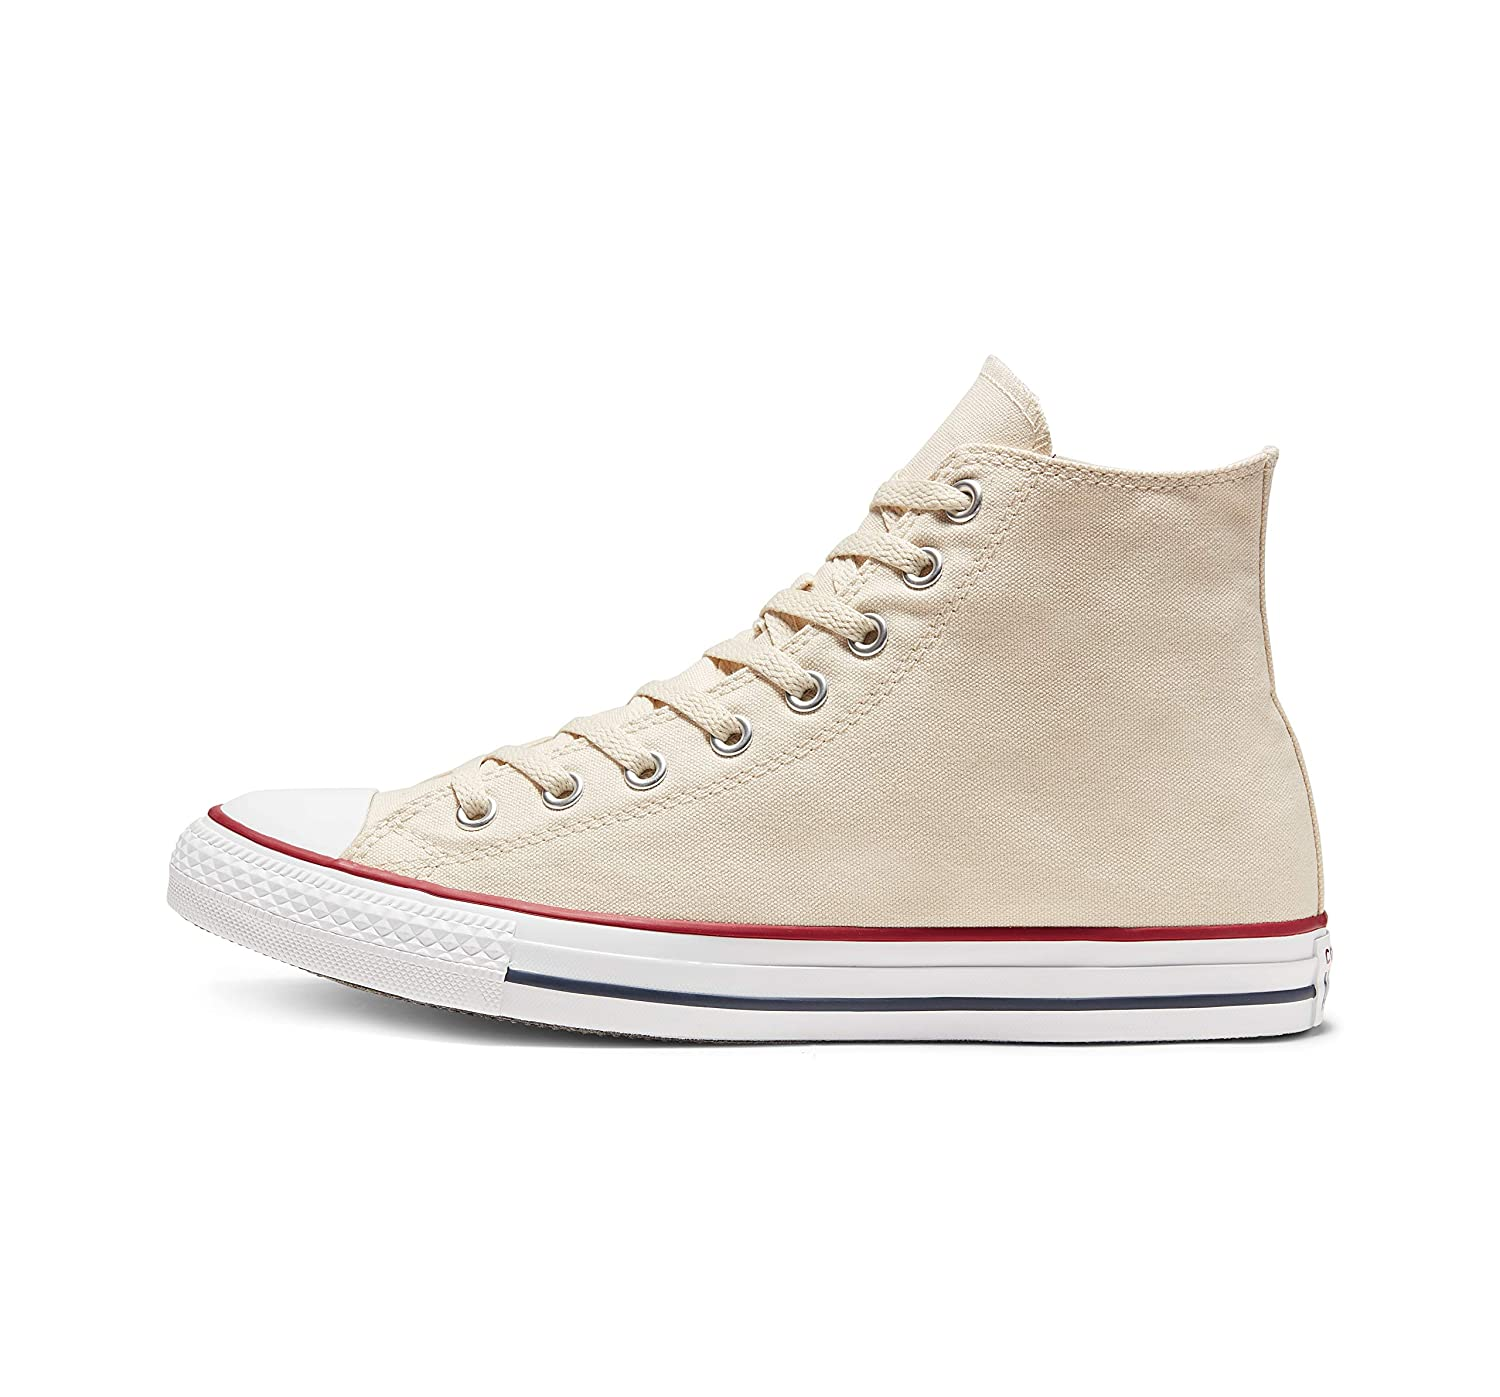 2converse all star ivory